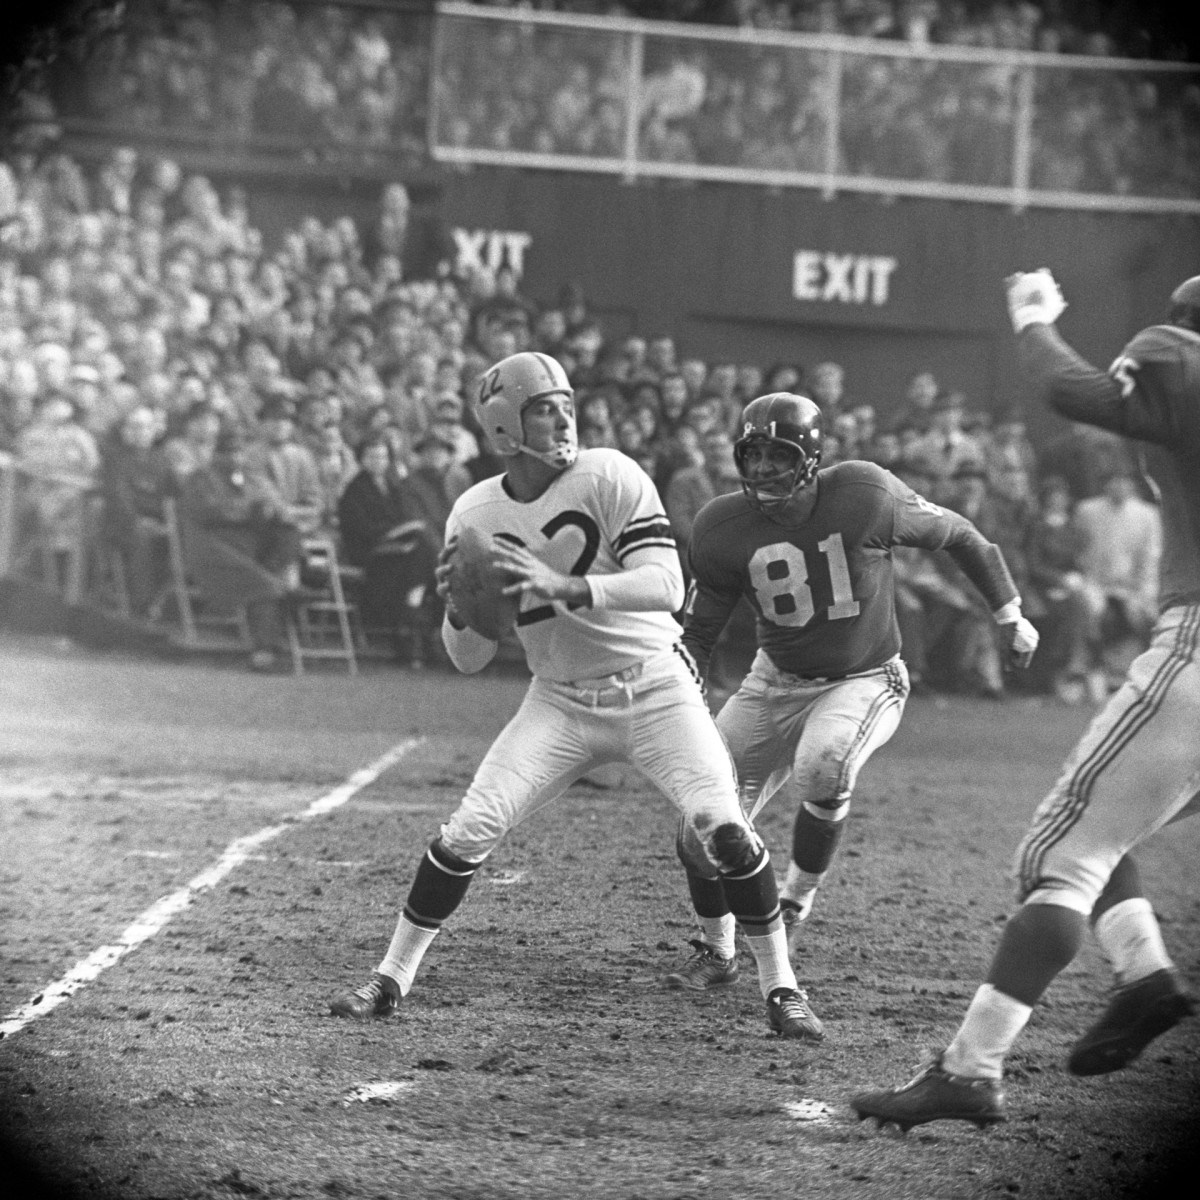 Quarterback Bobby Layne, shown playing for Pittsburgh in 1959, finished his career with the Steelers in 1962.